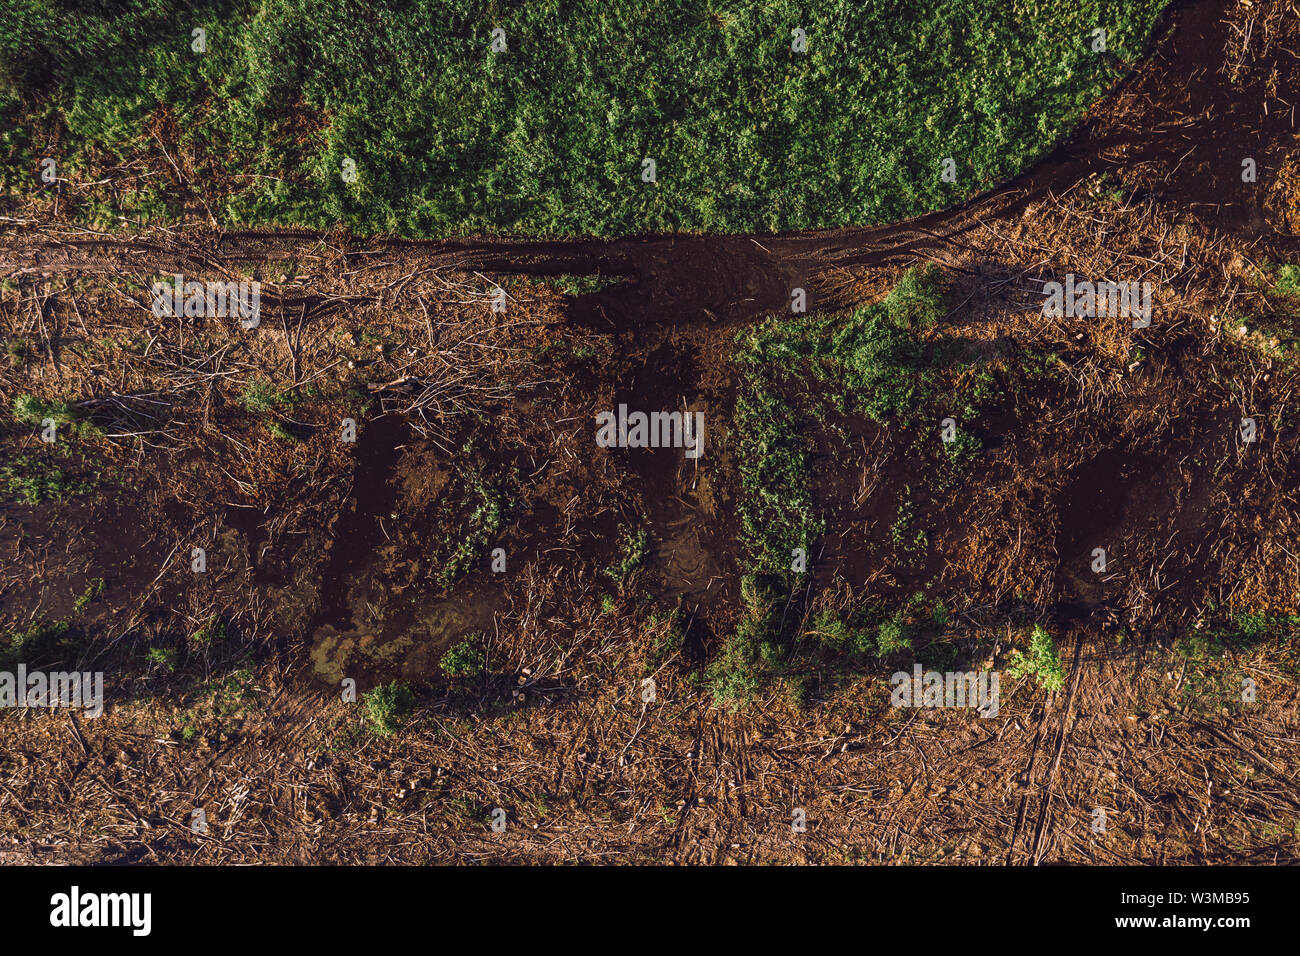 Aerial view of deforested landscape from drone pov, bare ground surface with chopped trees and branches, top view - Stock Image